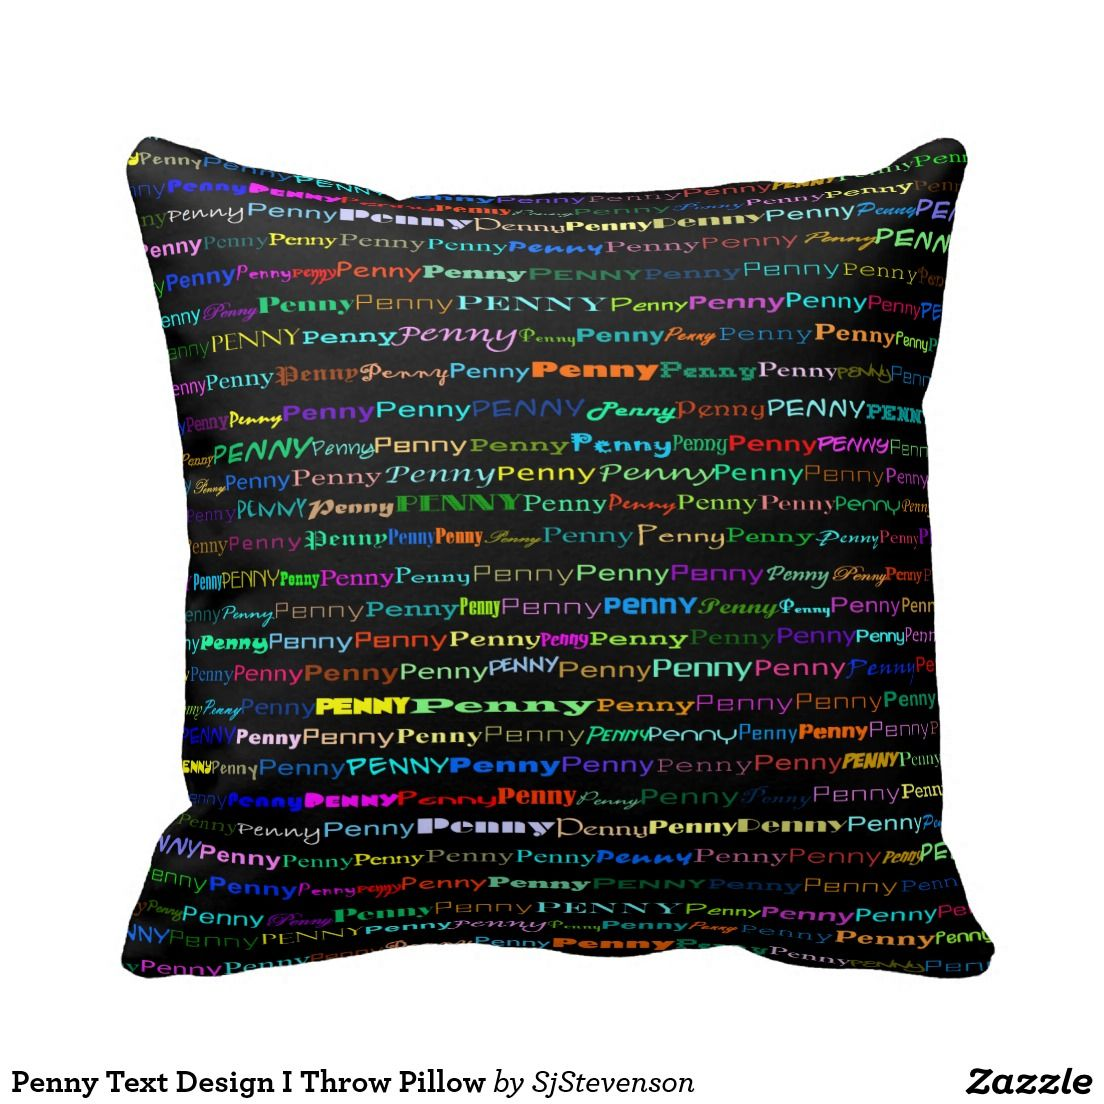 Penny Text Design I Throw Pillow